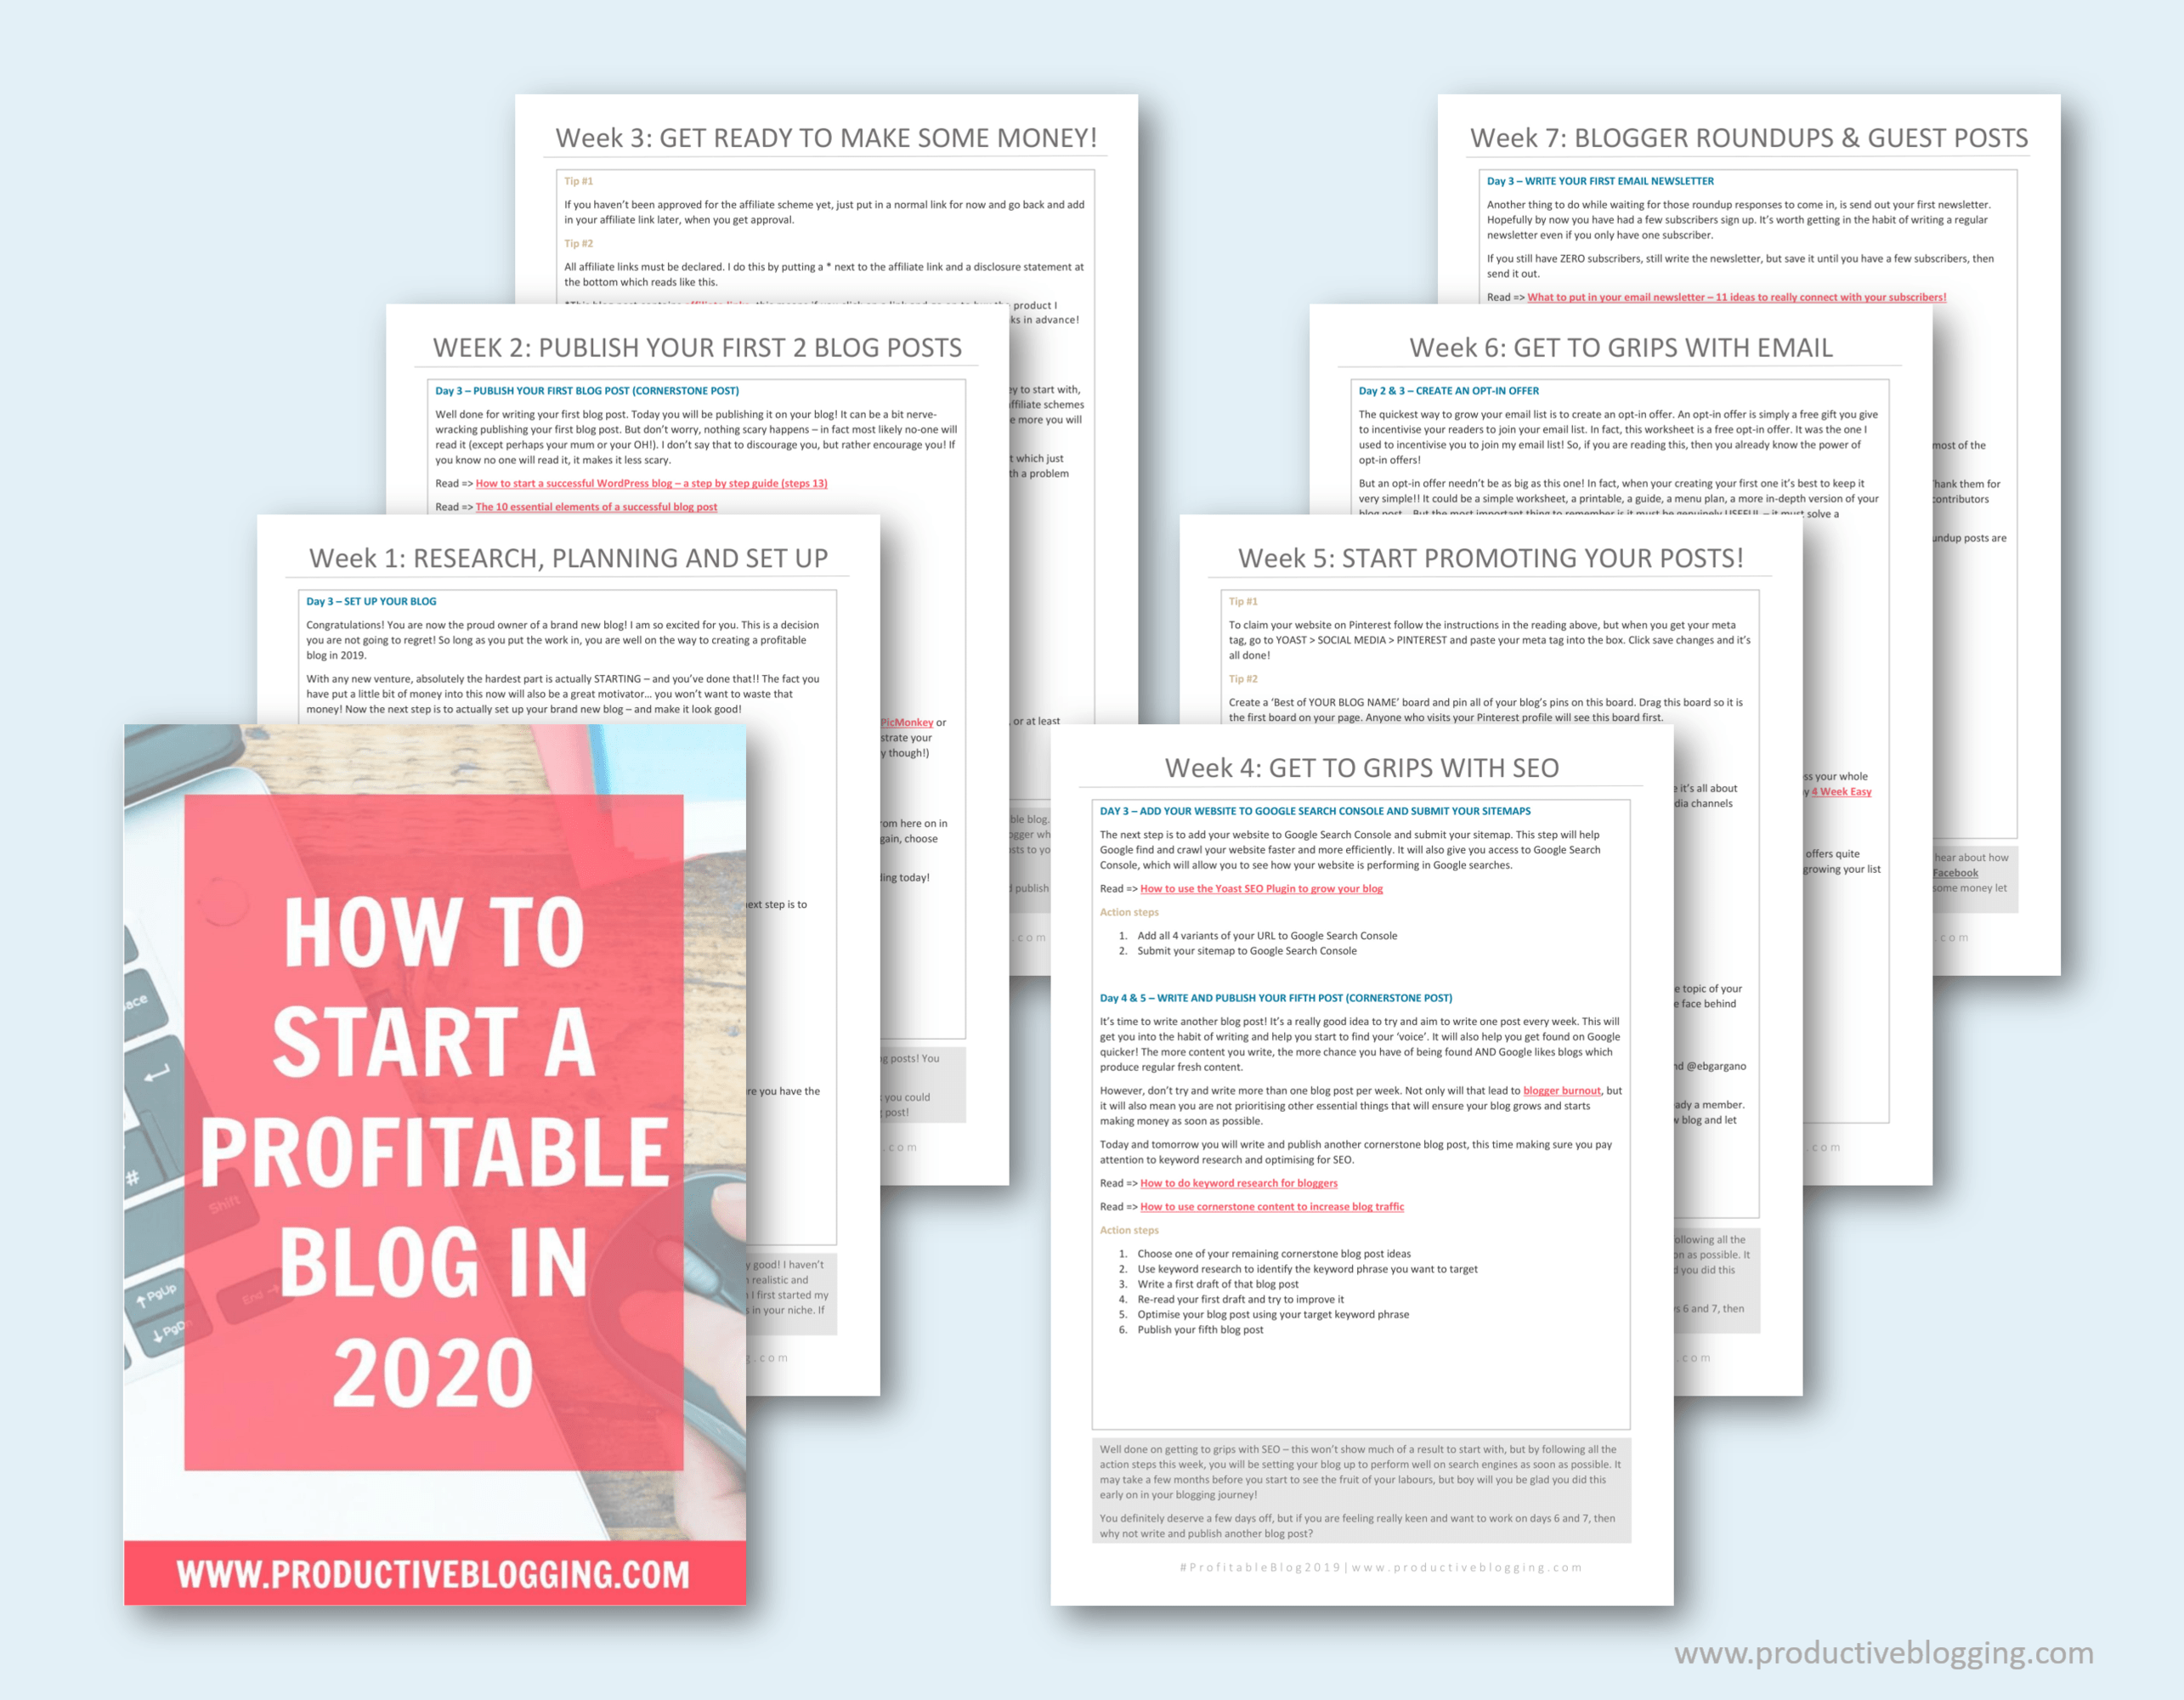 Want to start a profitable blog in 2020 but don't know where to start? Or maybe you already have a blog, but you still haven't made any money yet? In this post I show you the steps you need to take to go from zero to a profitable blog in 2020! #startablog #startablog2020 #profitableblog #makemoneyblogging #newblogger #bloggingnewbie #selfhosted #wordpressblog #siteground #newblog2020 #newyearnewblog #newyearsresolutions #blogplan #blogplanner #bloggingtips #productiveblogging #profitableblog2020